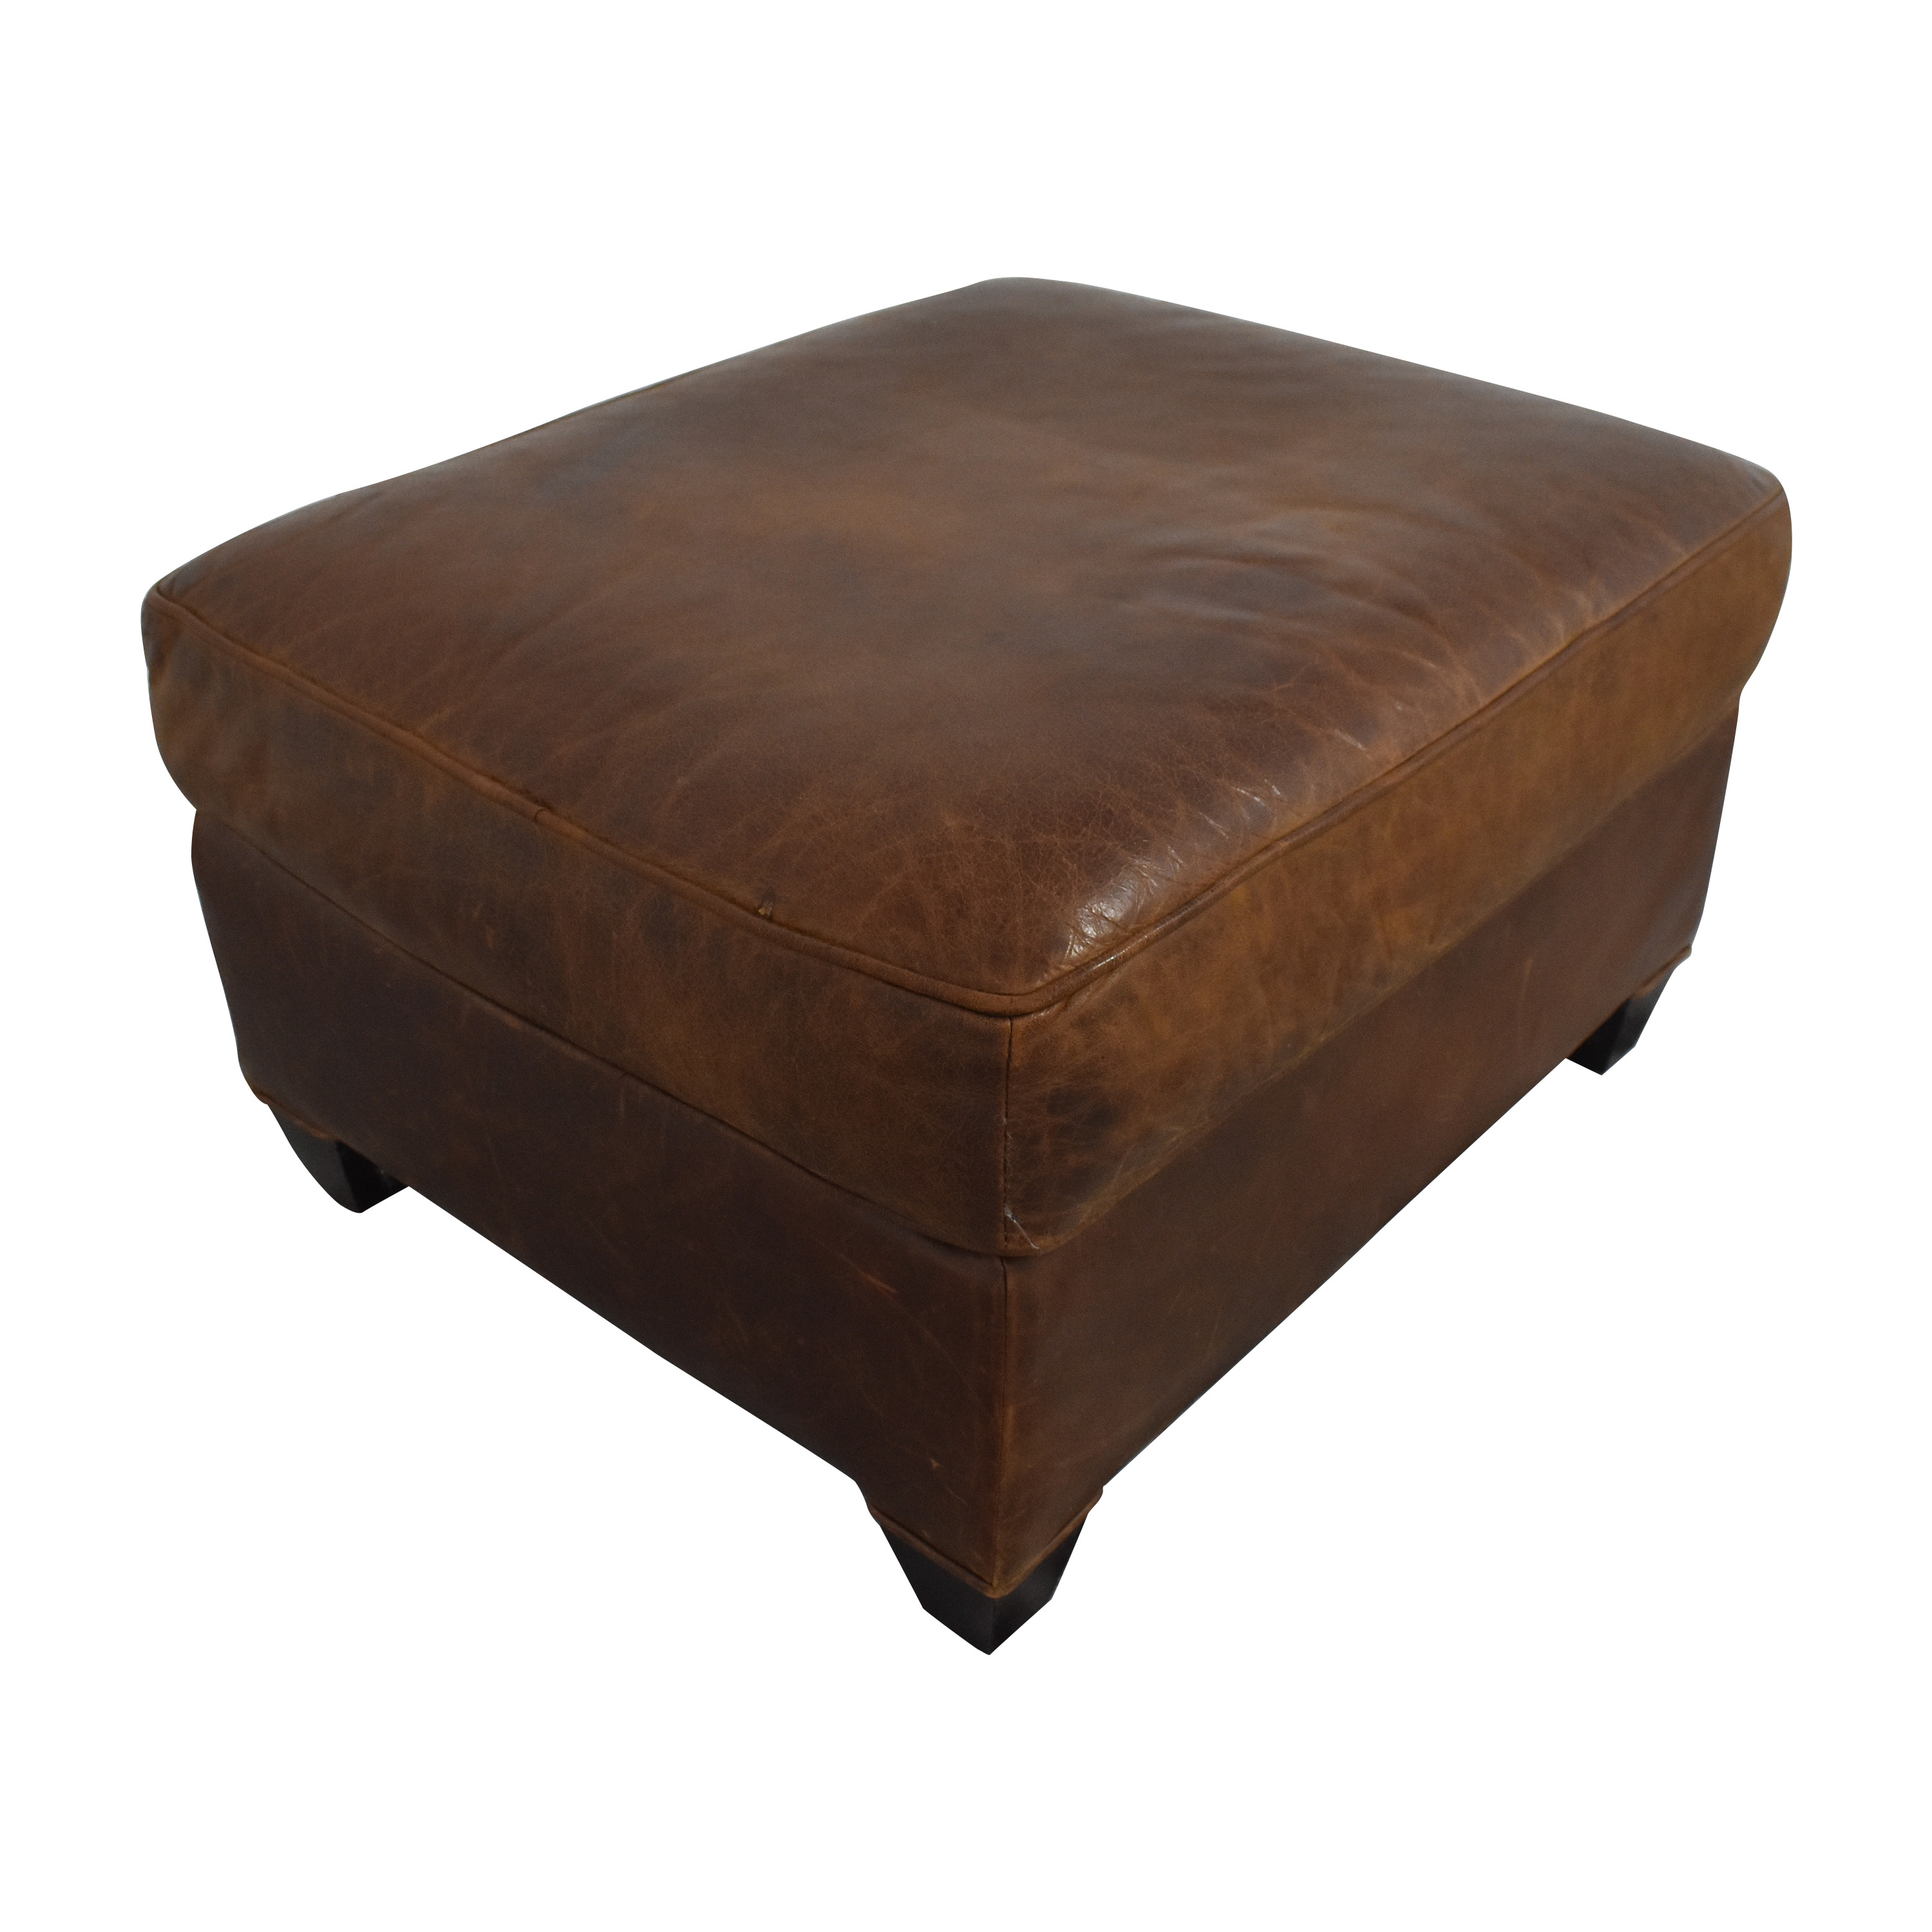 Crate & Barrel Crate & Barrel Ottoman pa